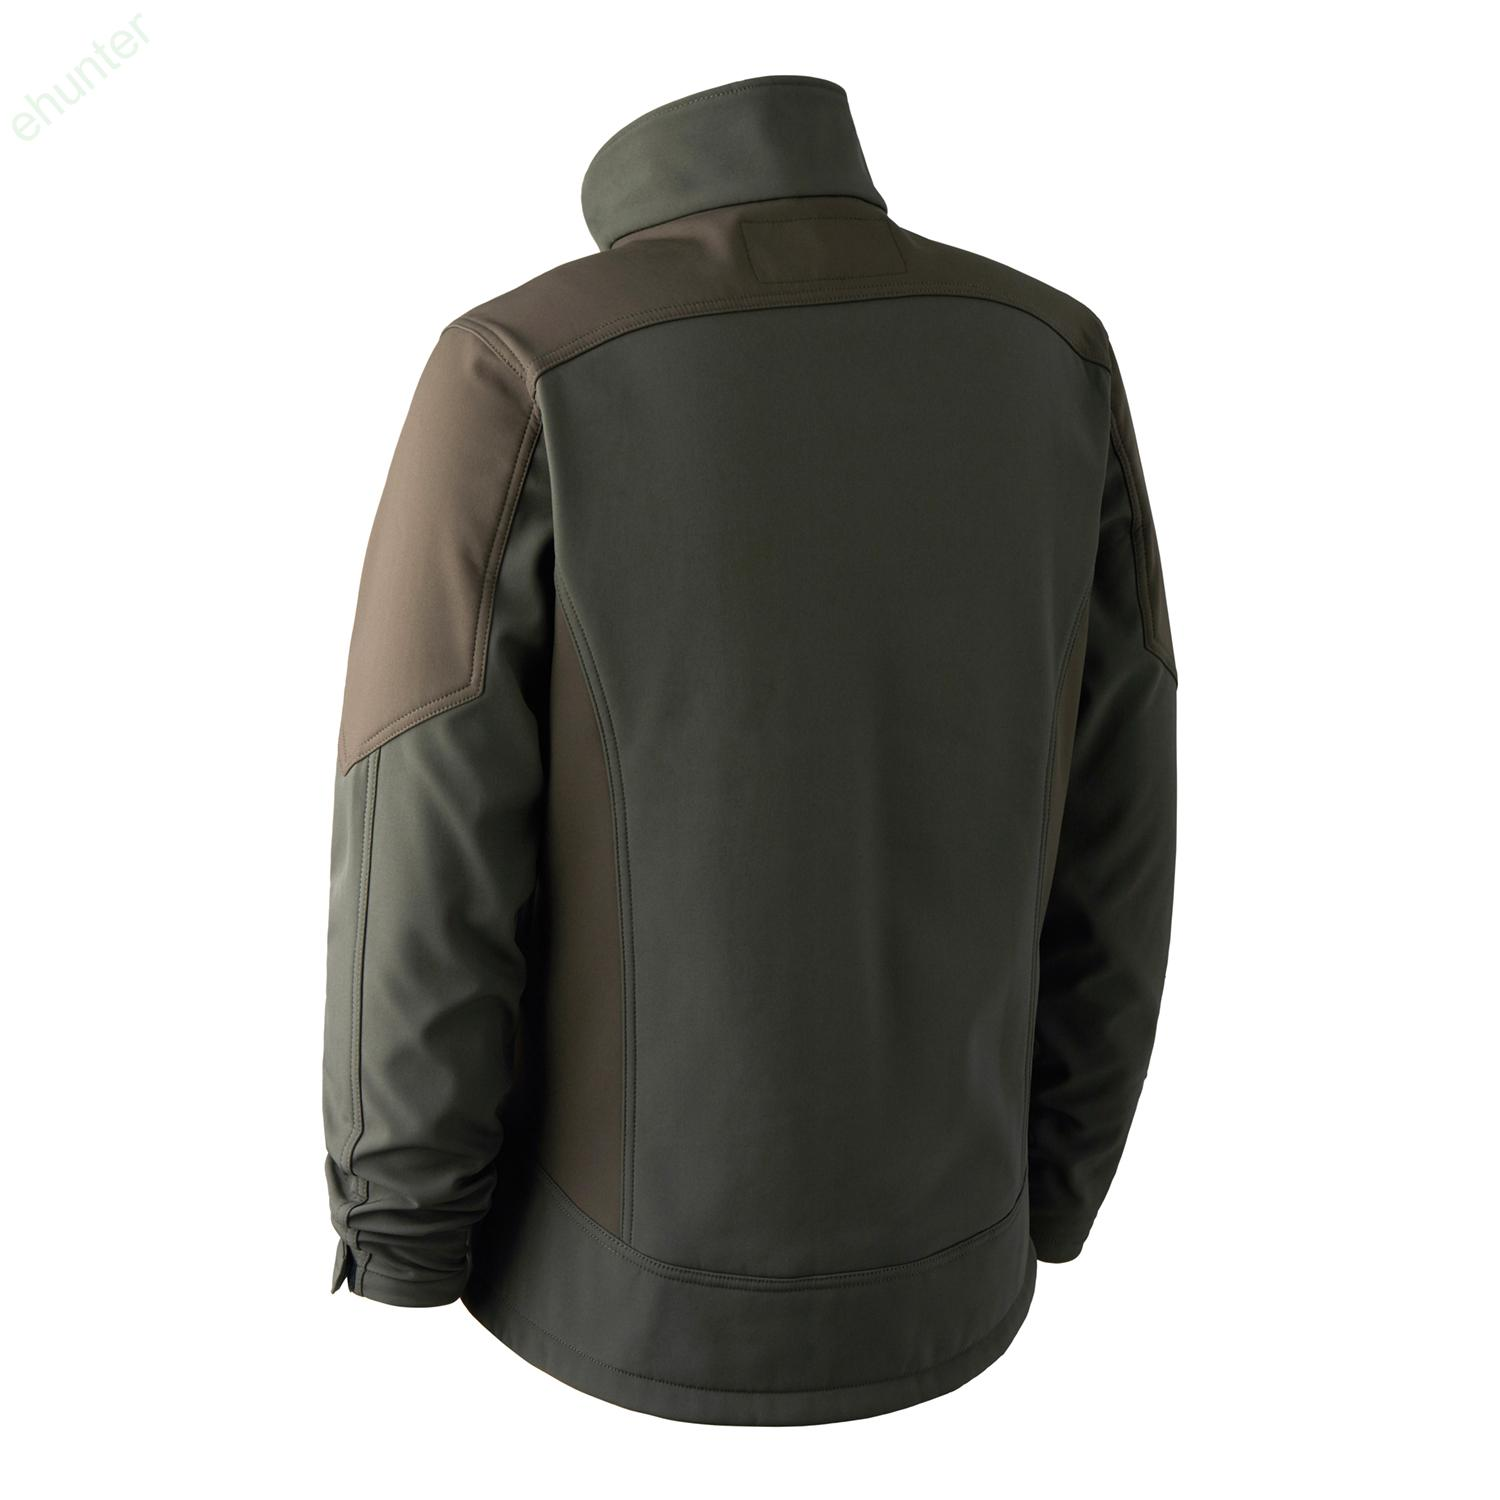 Bunda DEERHUNTER Rogaland Softshell Jacket